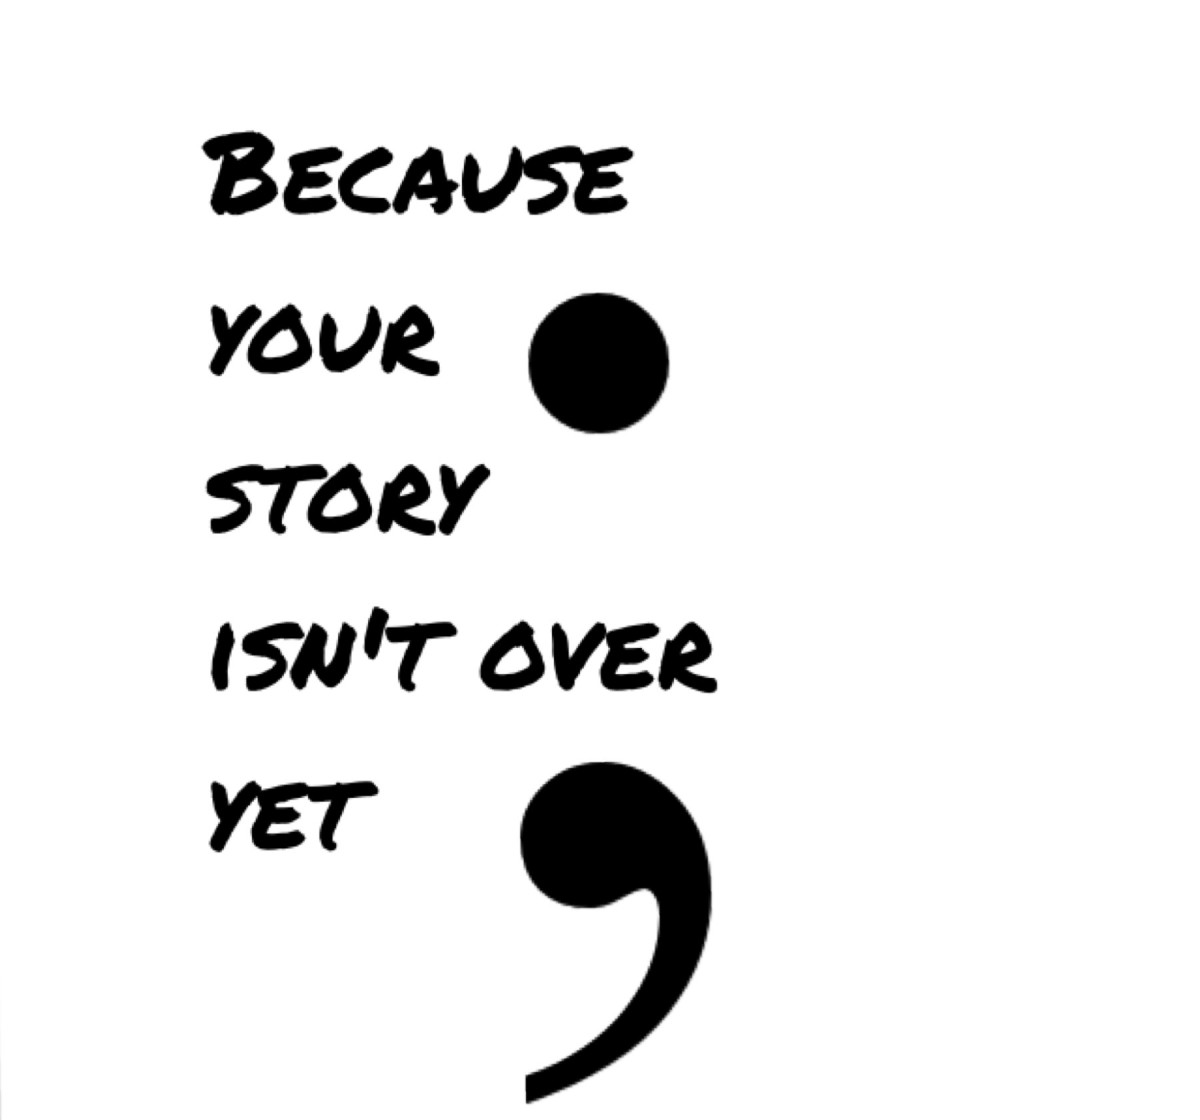 The Semicolon Project: My Thoughts on What It Means to Me